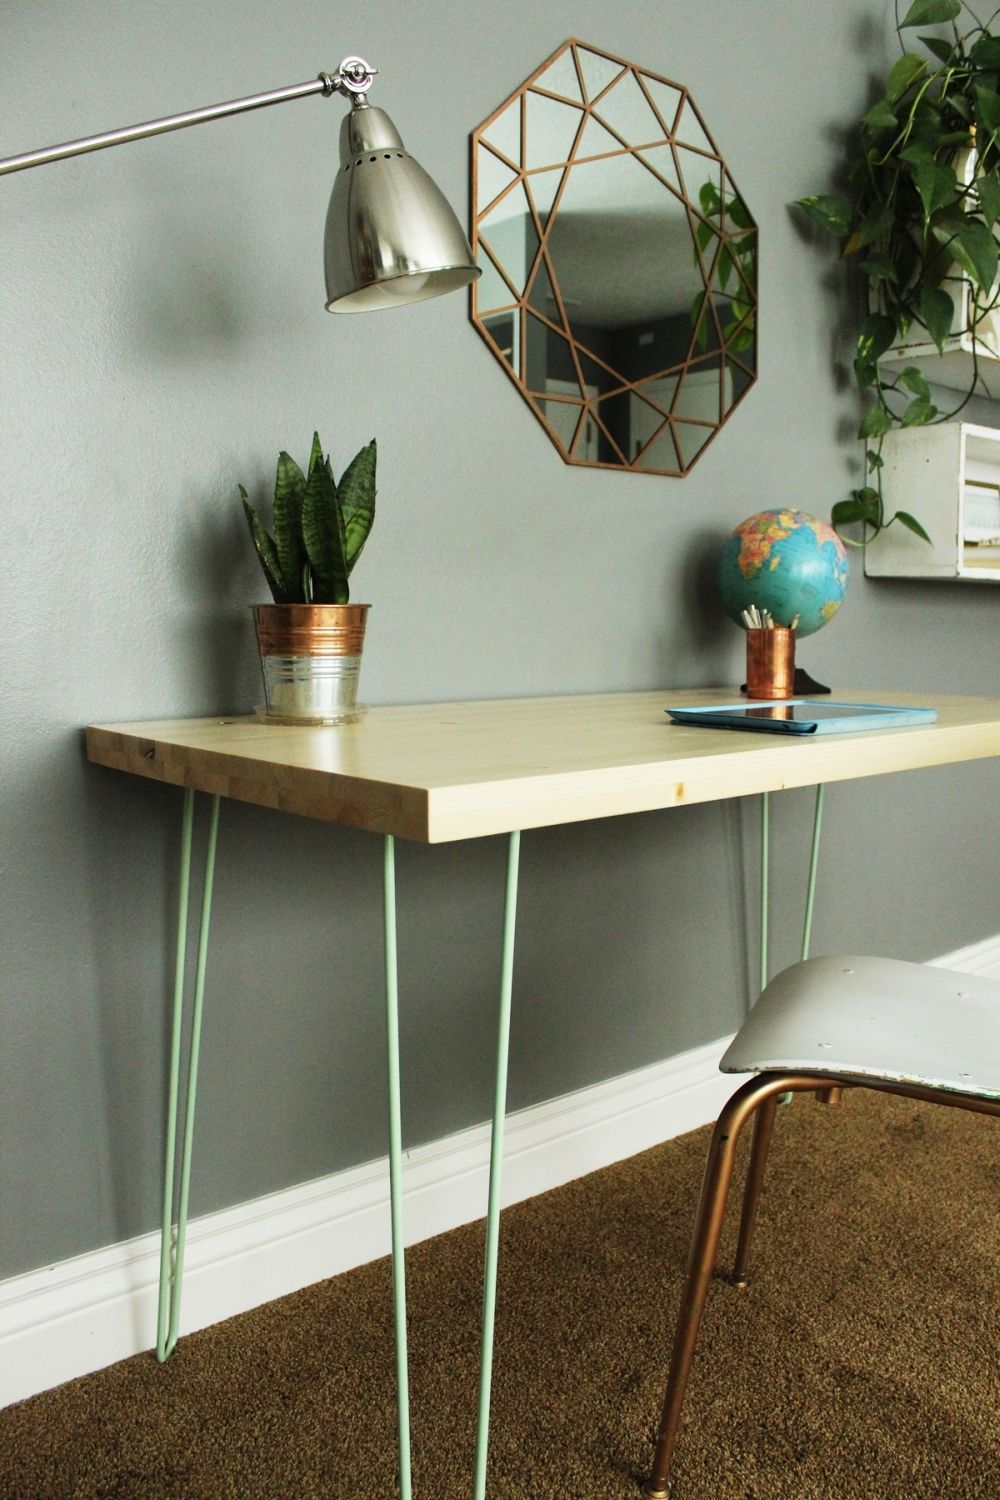 Diy Desk With Hairpin Legs Our All Time Favorite Diy Desk Ideas Summarized Diy